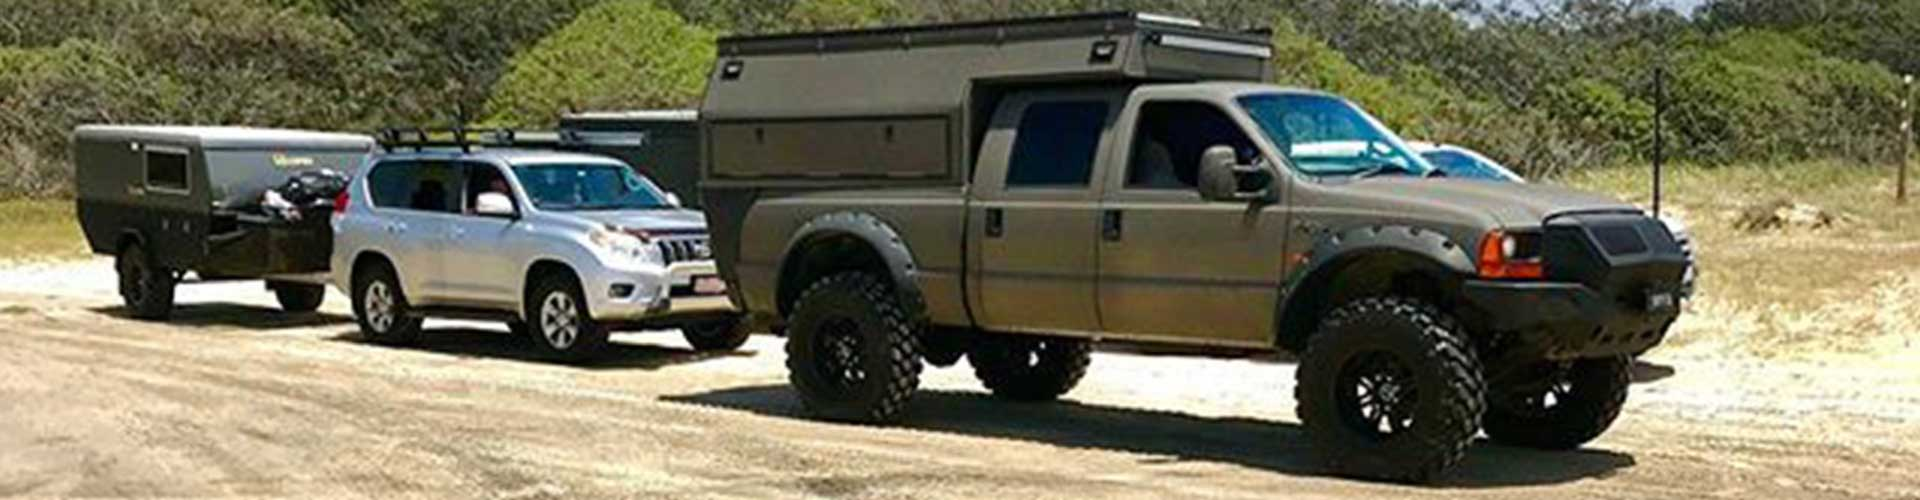 contact north coast offroad rvs